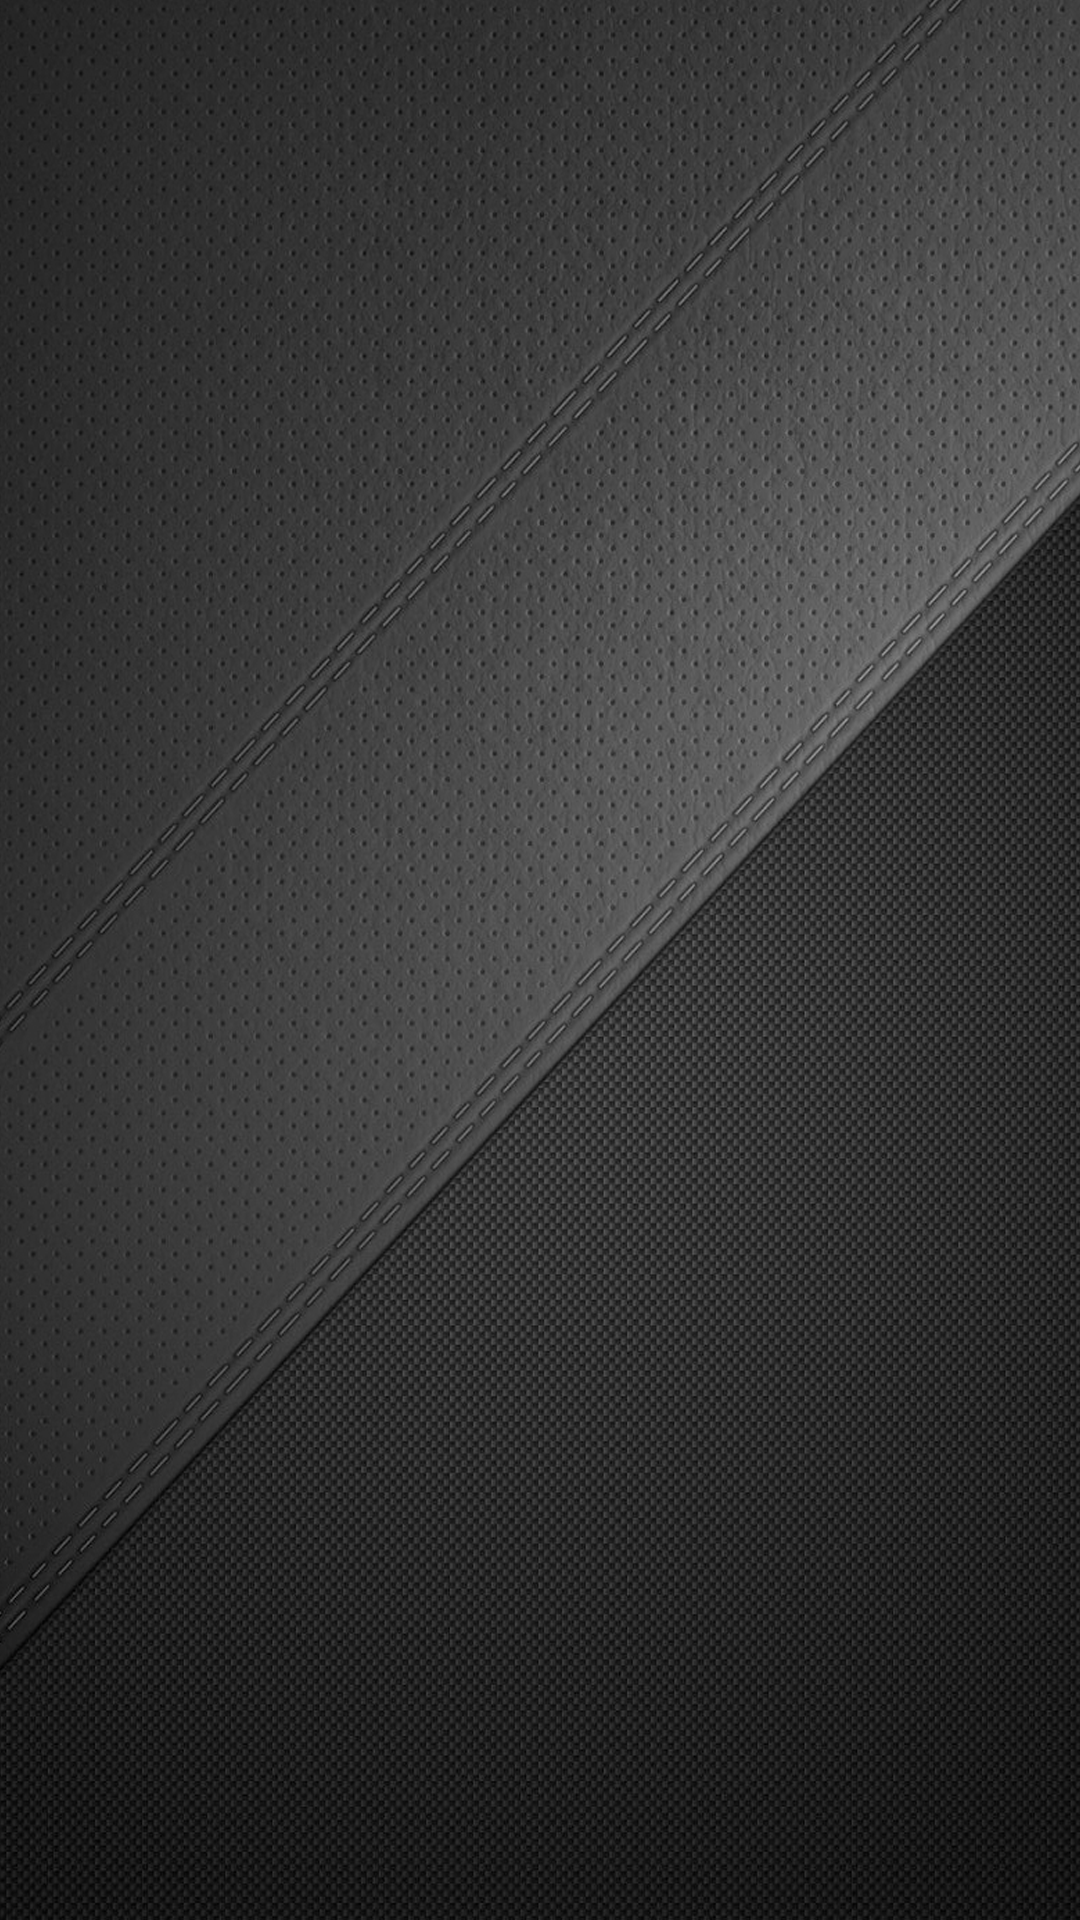 Leather htc one wallpaper - Best htc one wallpapers, free and easy ...